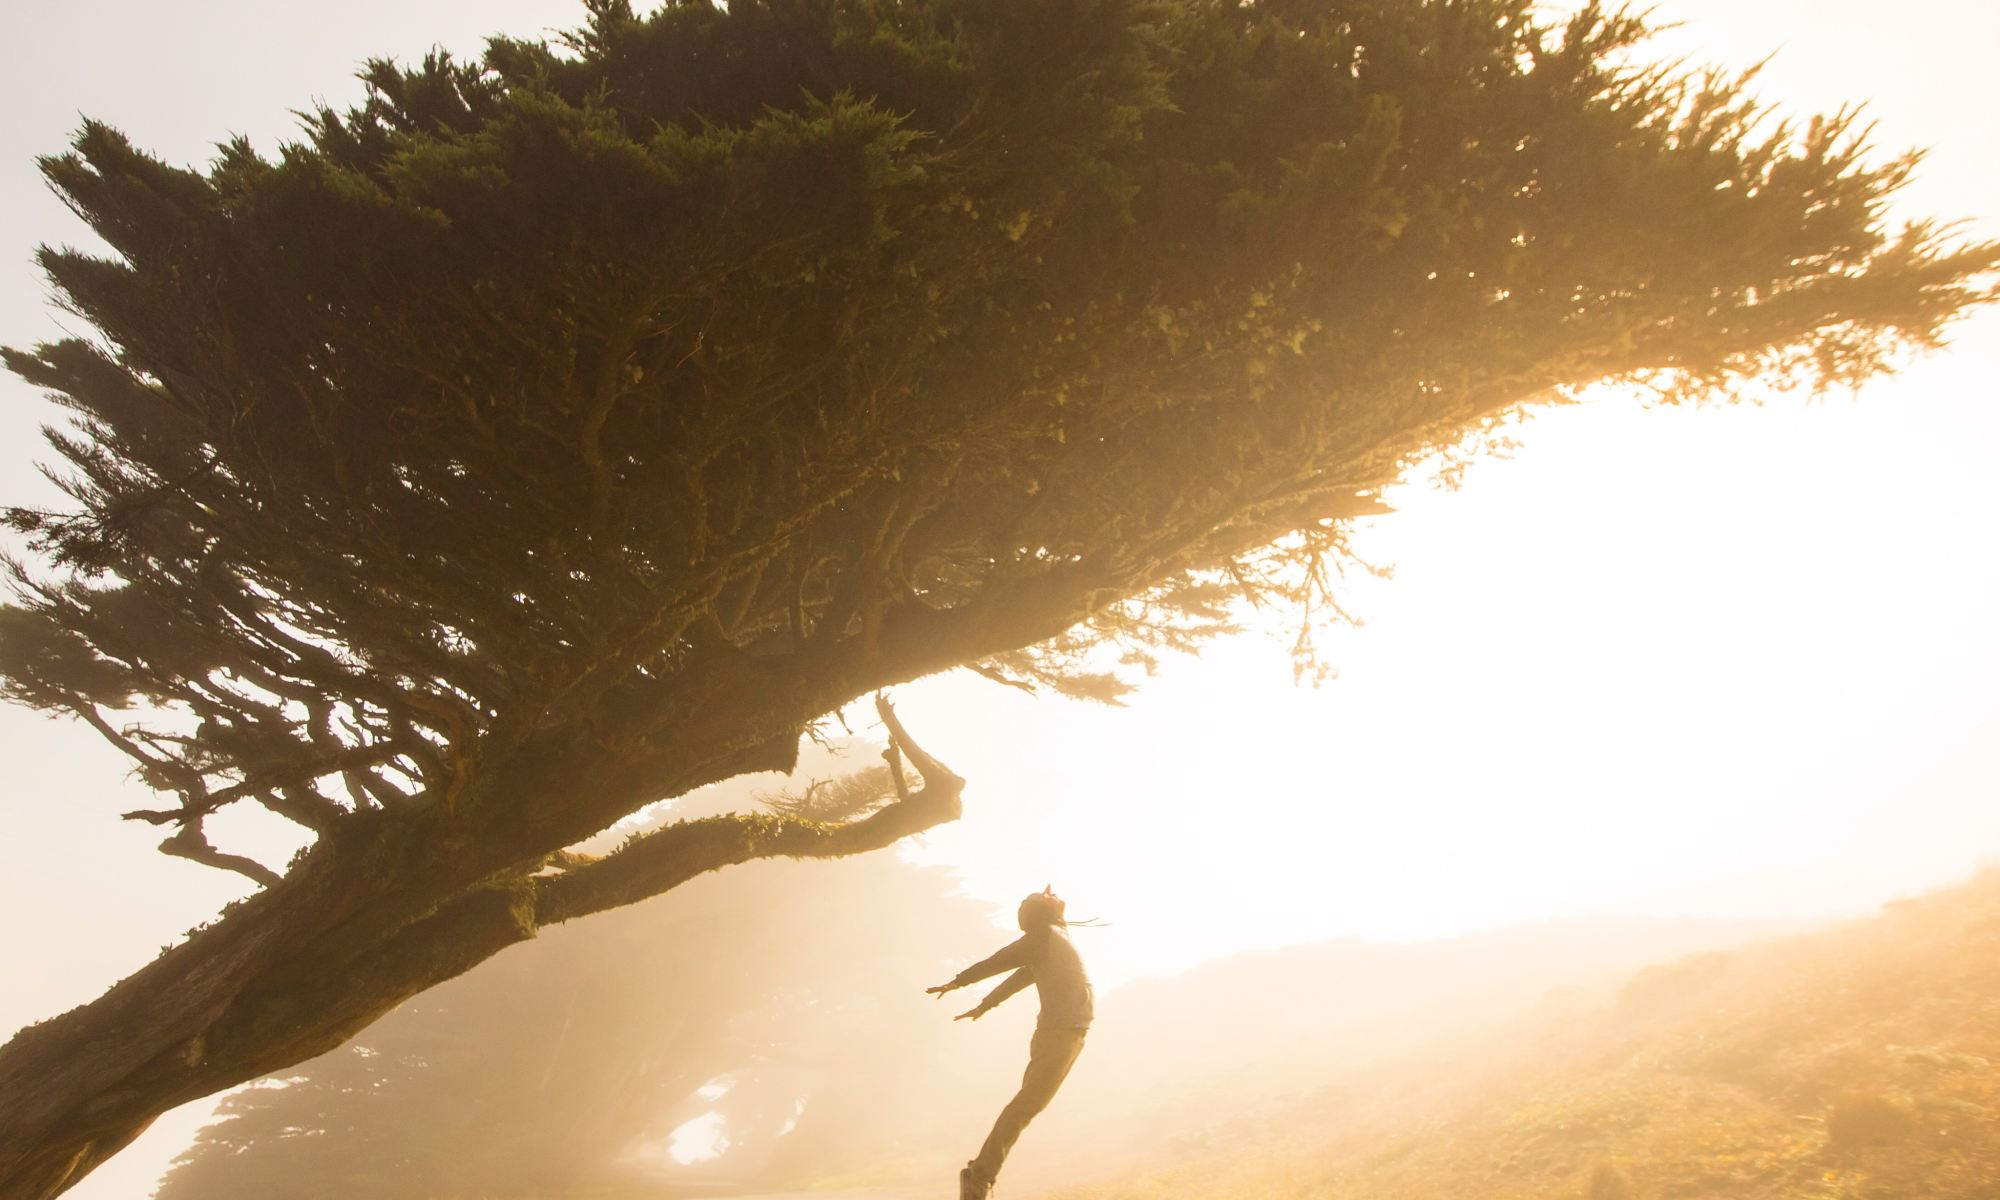 Silhouette of motivated and excited person jumping under tree